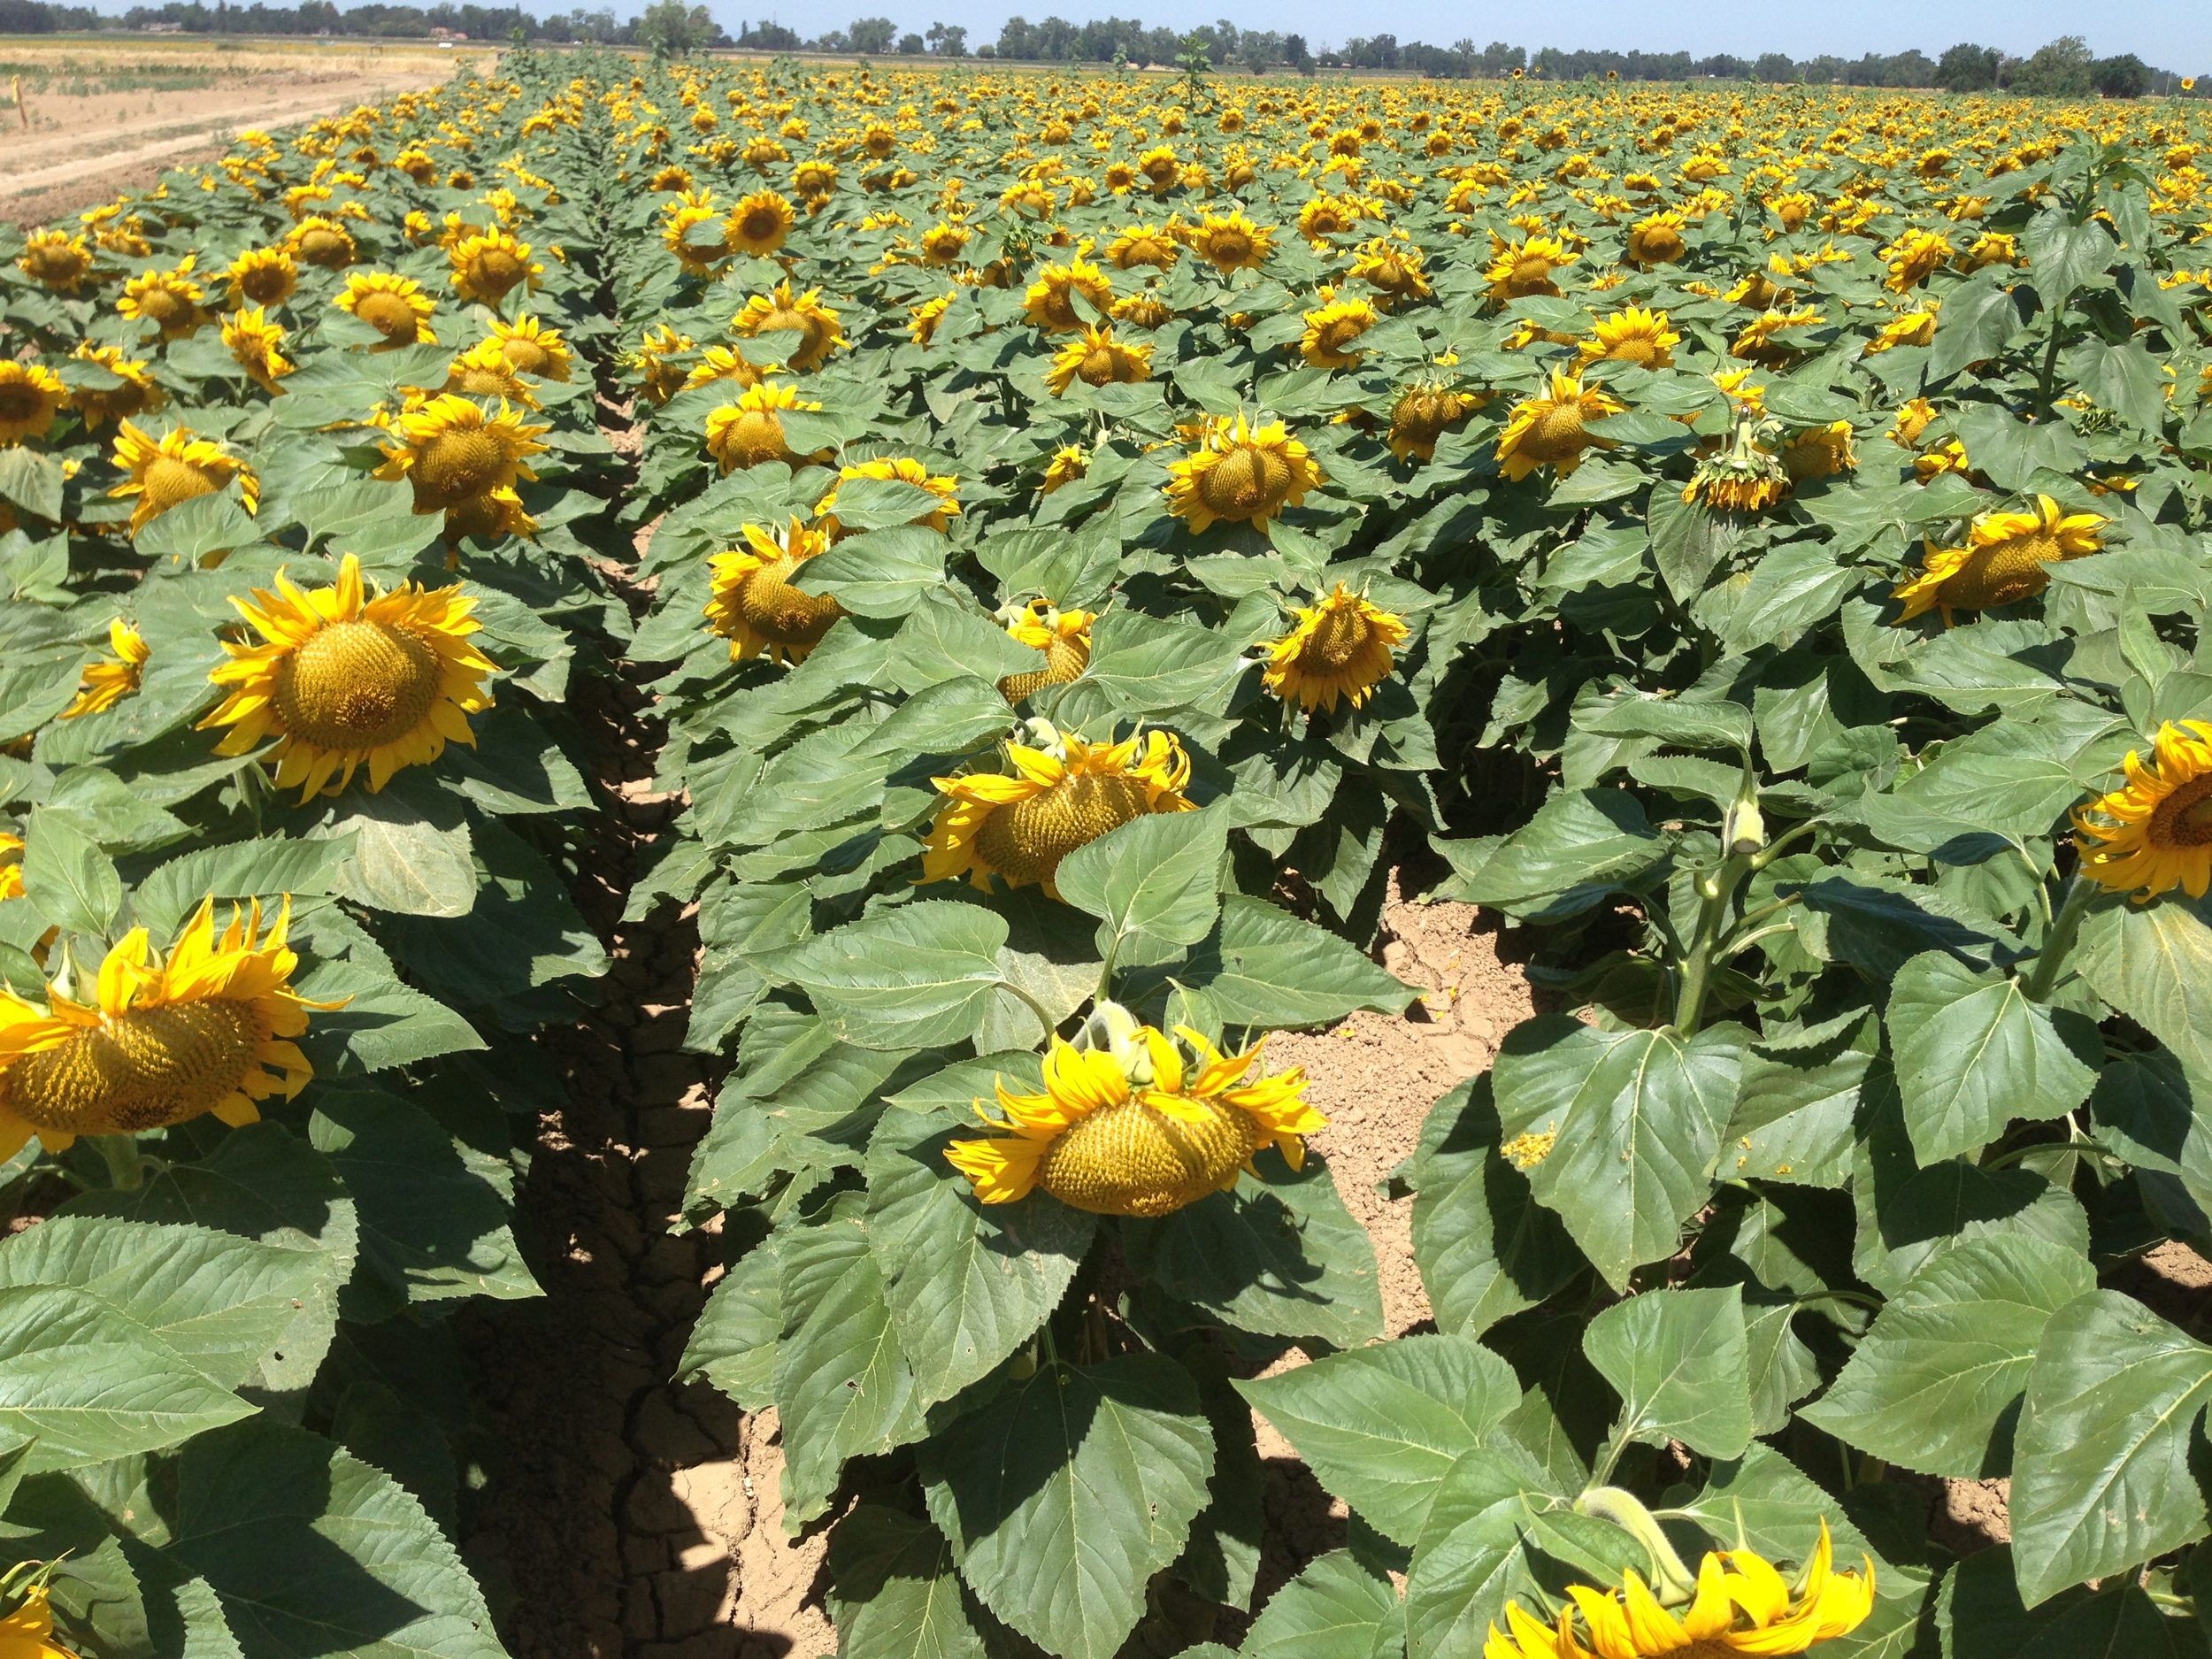 California GreyStripe sunflower is grown by some of California ' s best farmers, recognized globally for producing high quality fruits, vegetables, nuts and seeds.